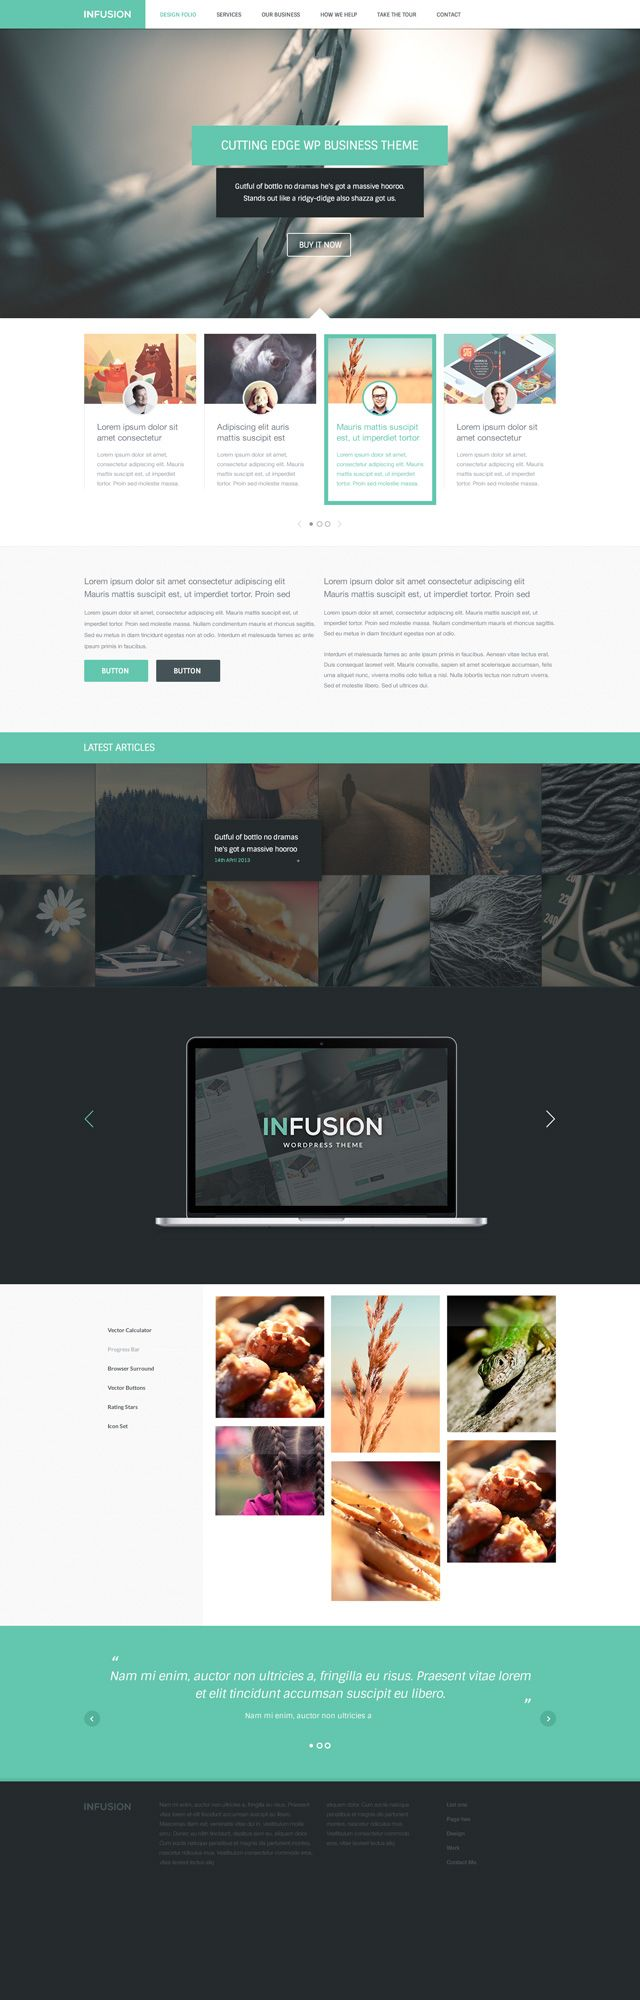 Infusion - Free website template | #webdesign #it #web #design #layout #userinterface #website #webdesign < repinned by www.BlickeDeeler.de | Visit our website www.blickedeeler.de/leistungen/webdesign